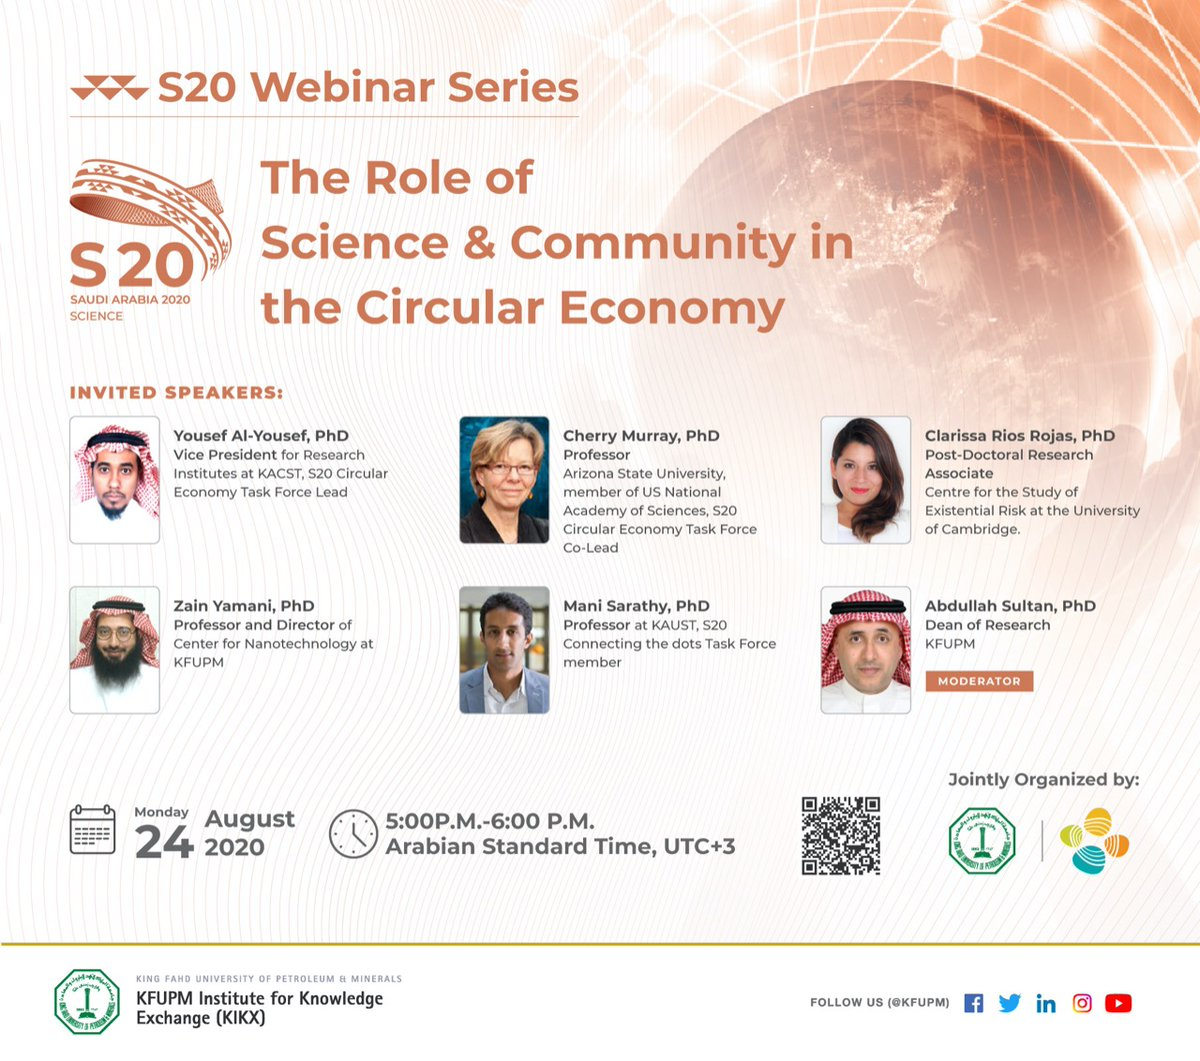 Don't forget to register for the upcoming #Science20 webinar session on Circular Economy ➡️ https://t.co/KMciaezFQA Speakers include experts from international institutions such as @KACST, @ASU, @Cambridge_Uni, @KFUPM and @KAUST_News @CCRCatKAUST #circulareconomy #G20SaudiArabia https://t.co/snLHq0dpCi